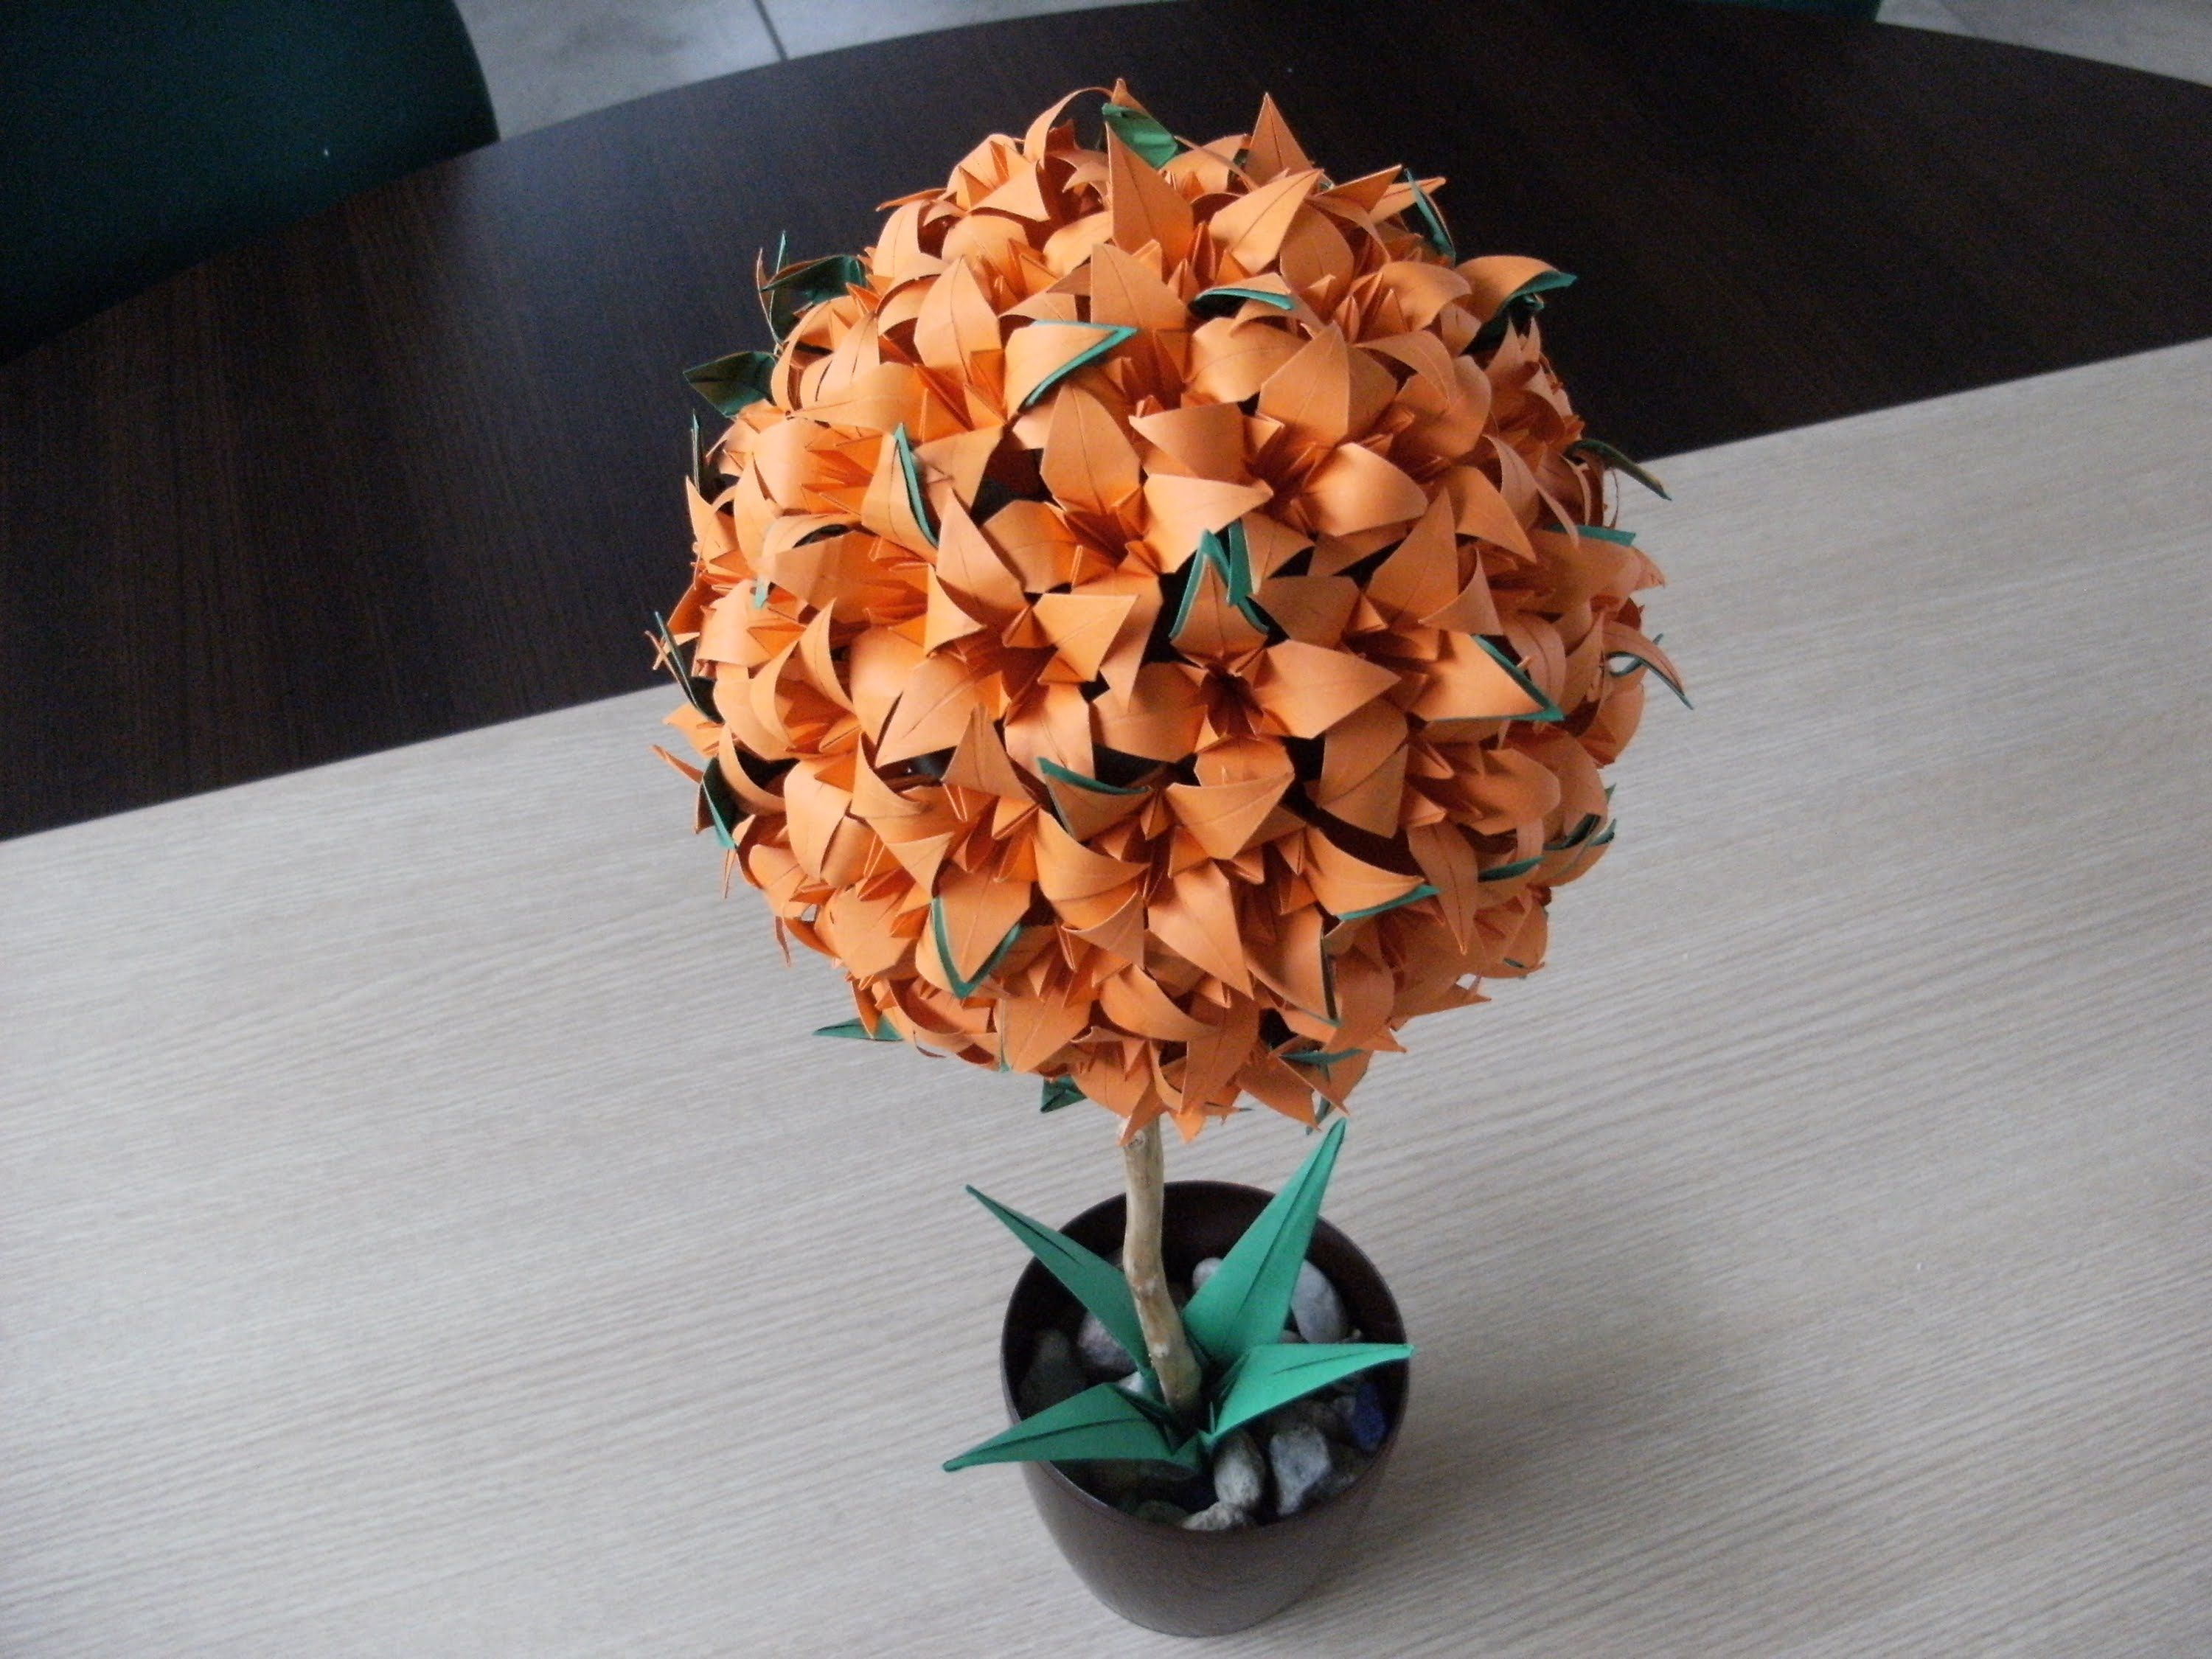 3d Origami Flower Ball Lily Iris How To Make Origami Flowers Origami Lily Origami